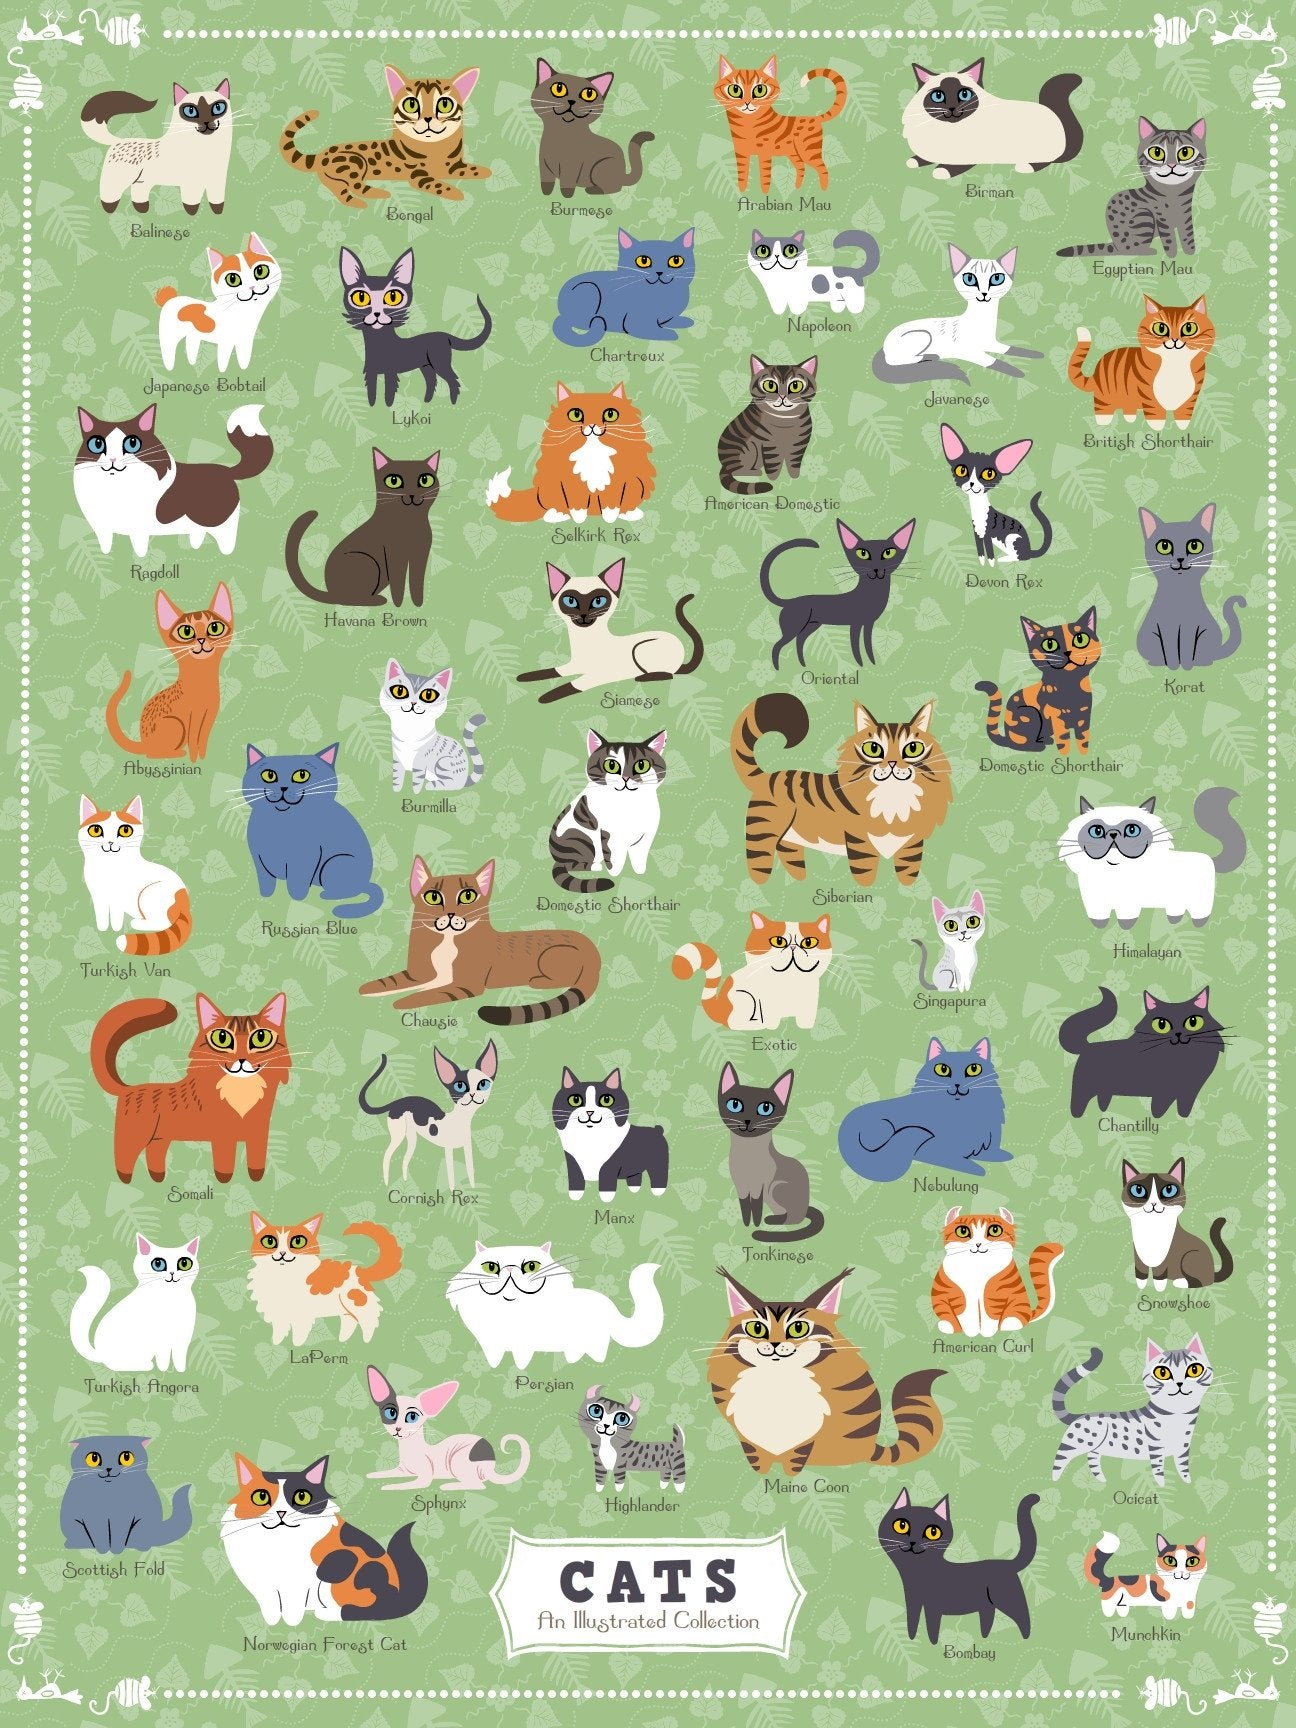 Buy Cats of America, 500 Piece Jigsaw Puzzle from Walking Pants Curiosities, the Most un-General Gift Store in Downtown Memphis, Tennessee!